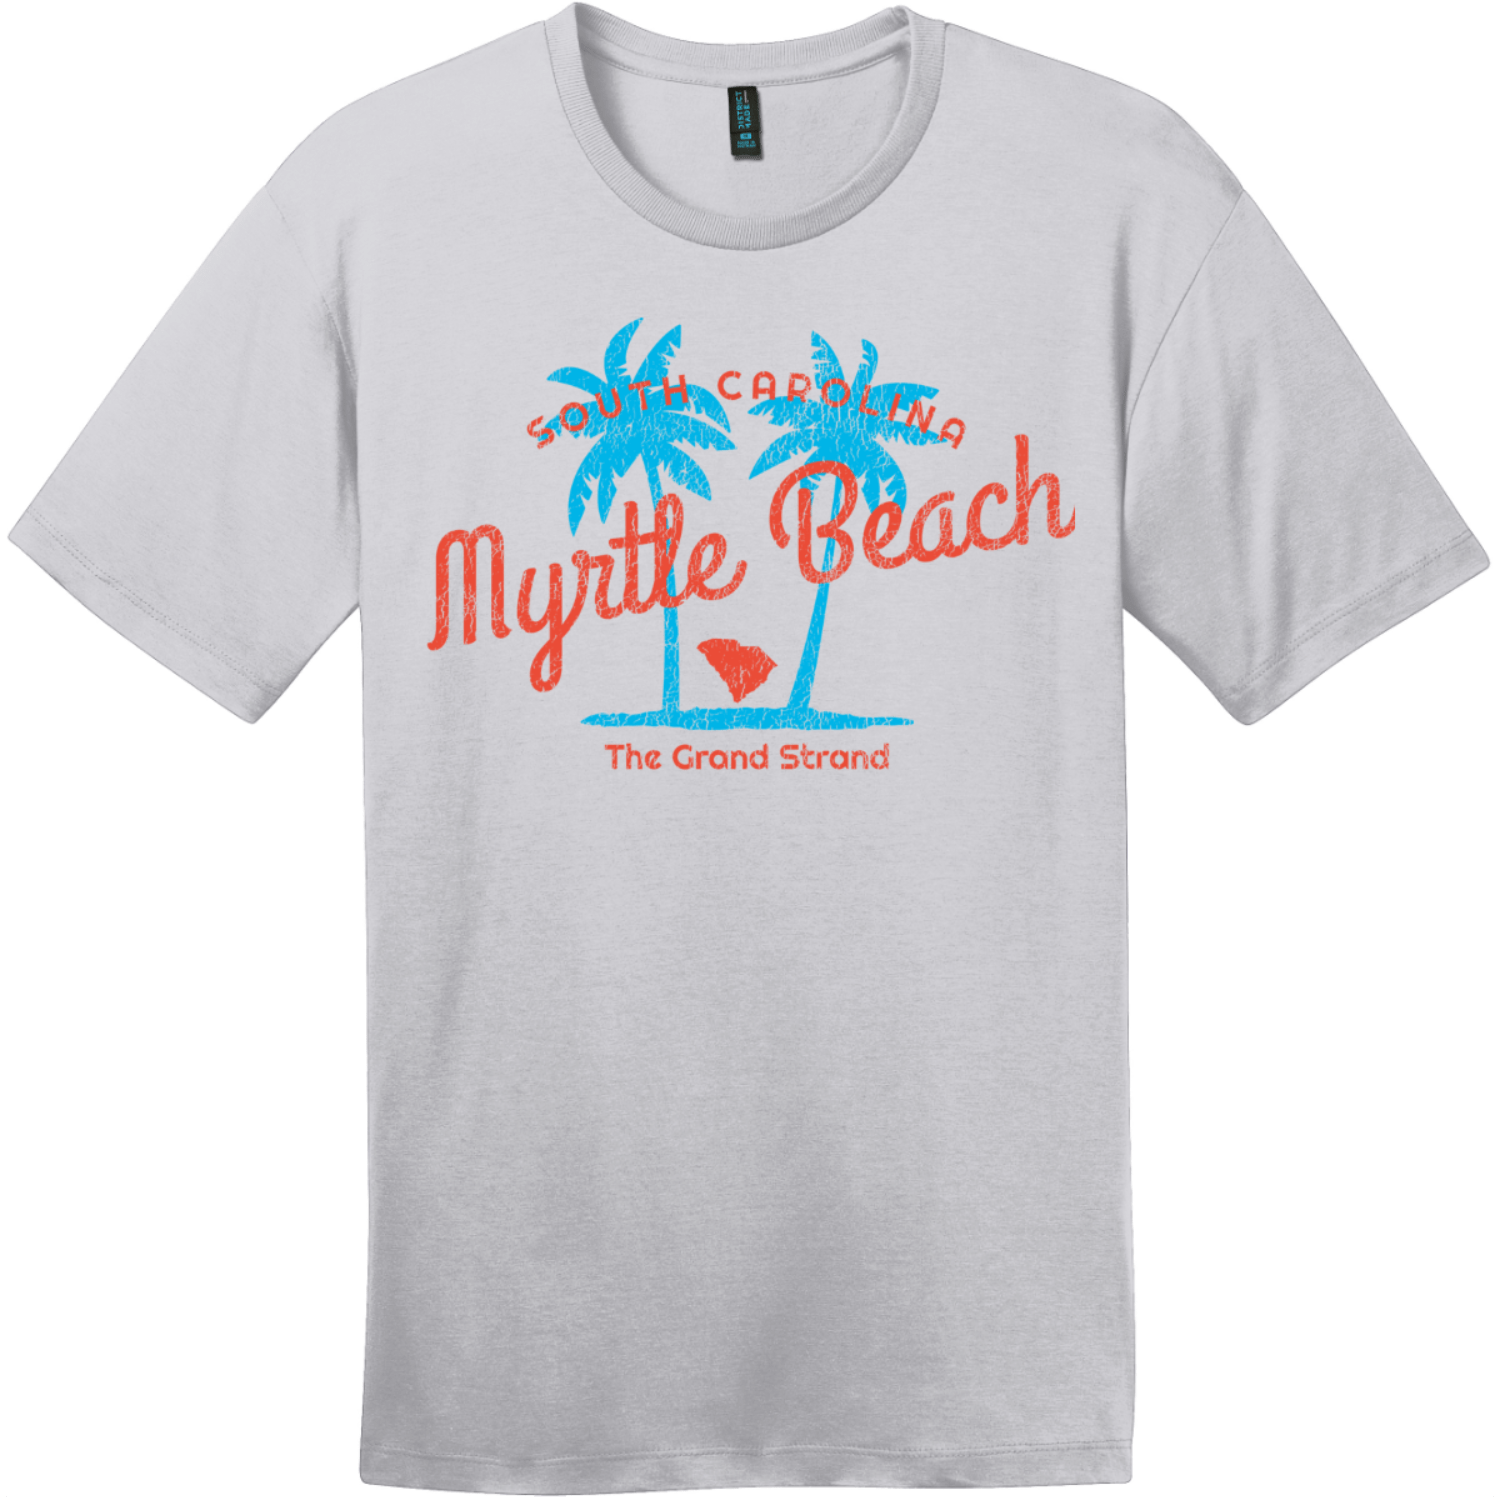 Myrtle Beach The Grand Strand T-Shirt Silver District Perfect Weight Tee DT104